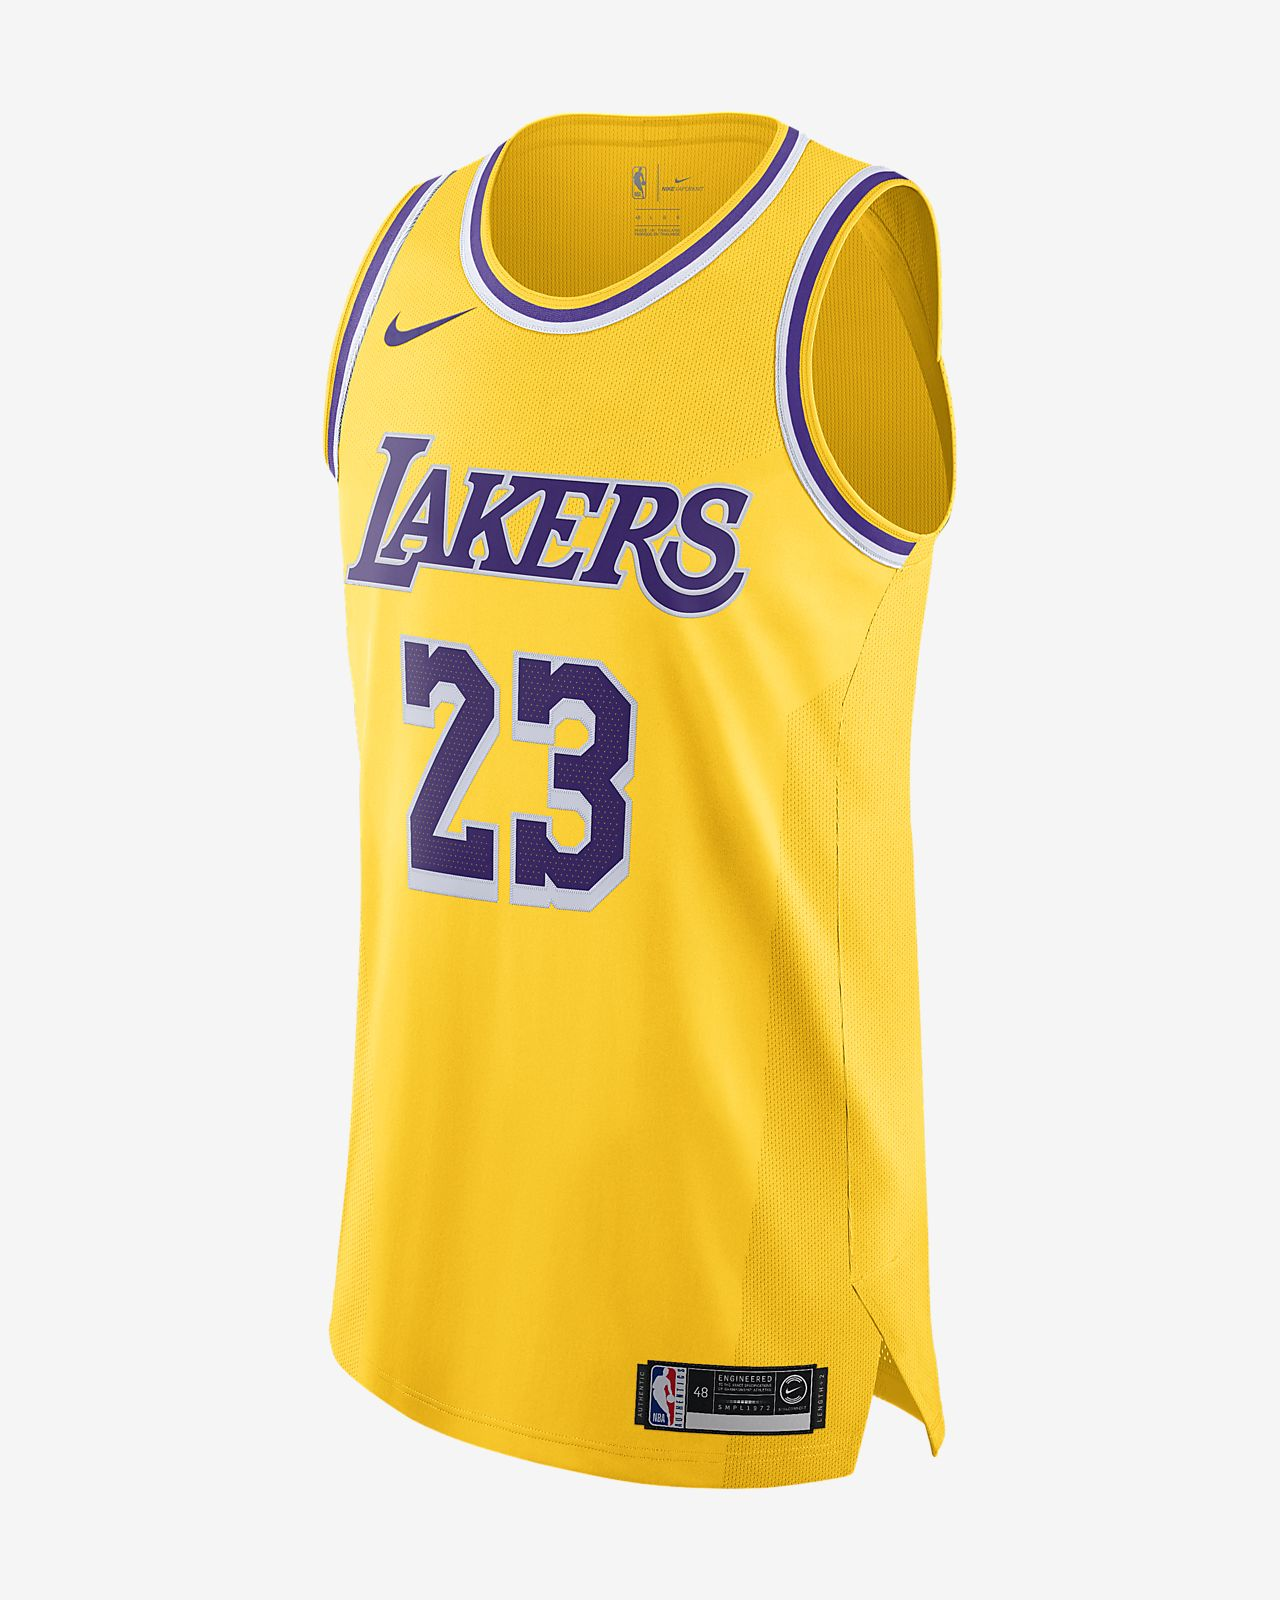 洛杉矶湖人队 (LeBron James) Icon Edition Authentic Nike NBA Connected Jersey 男子球衣